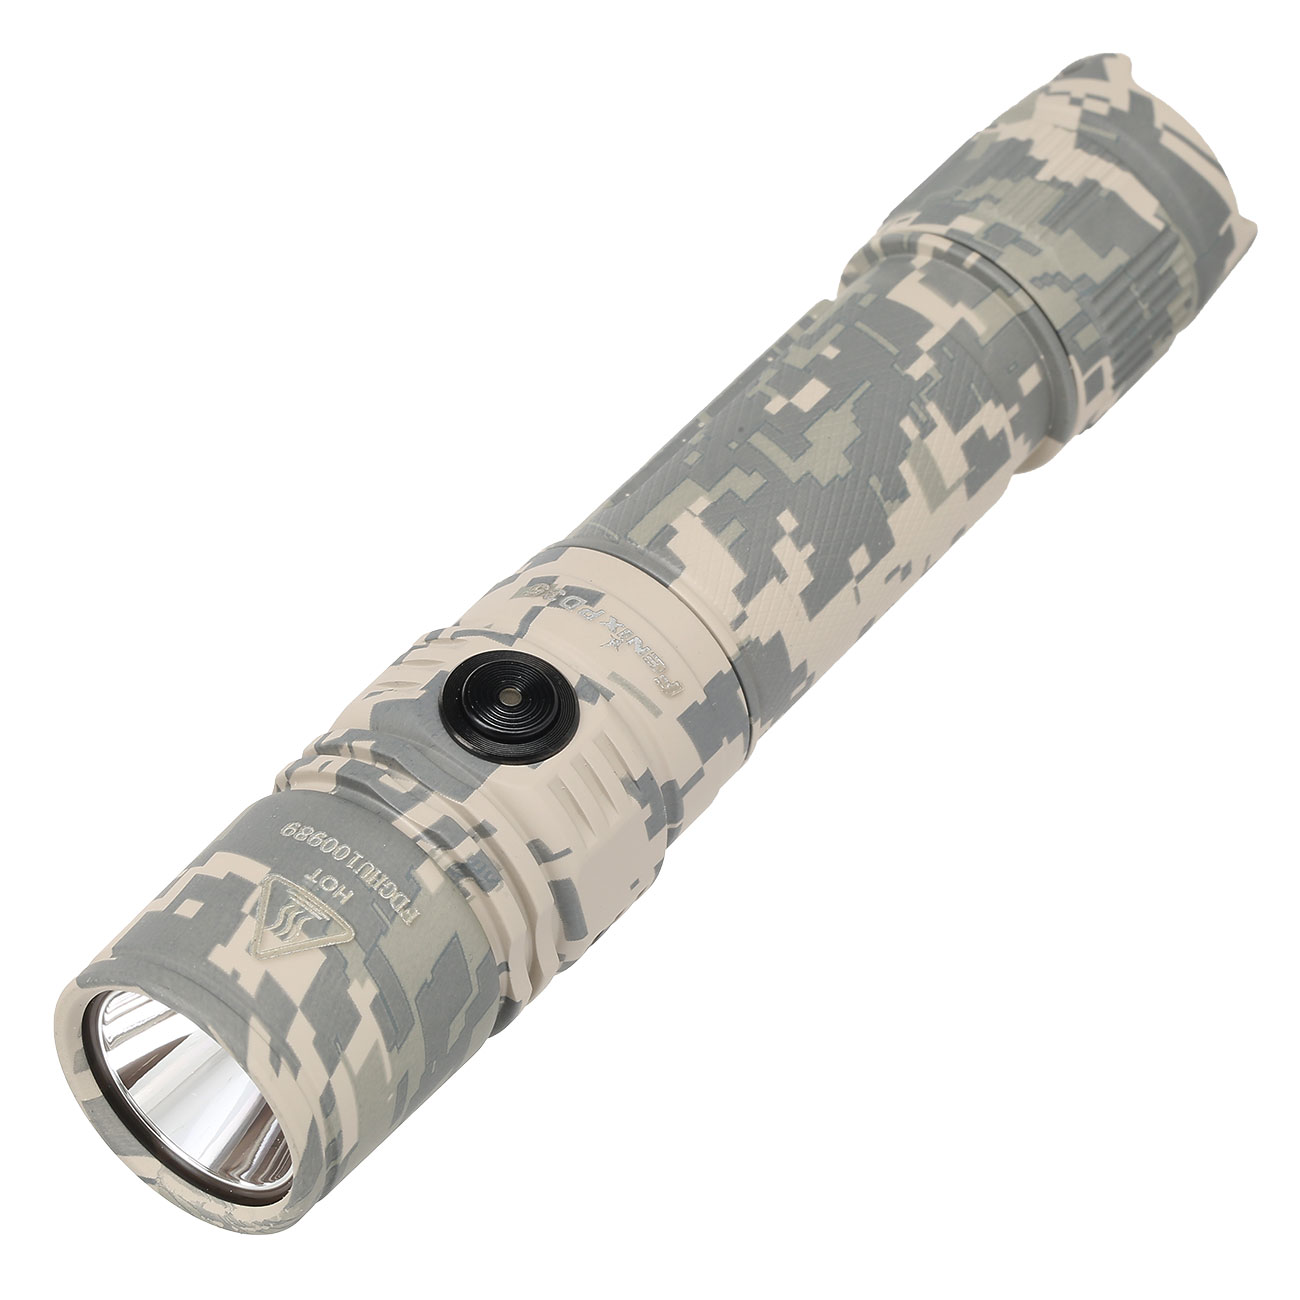 Fenix LED Taschenlampe PD35 V2.0 digital camo 1000 Lumen 0